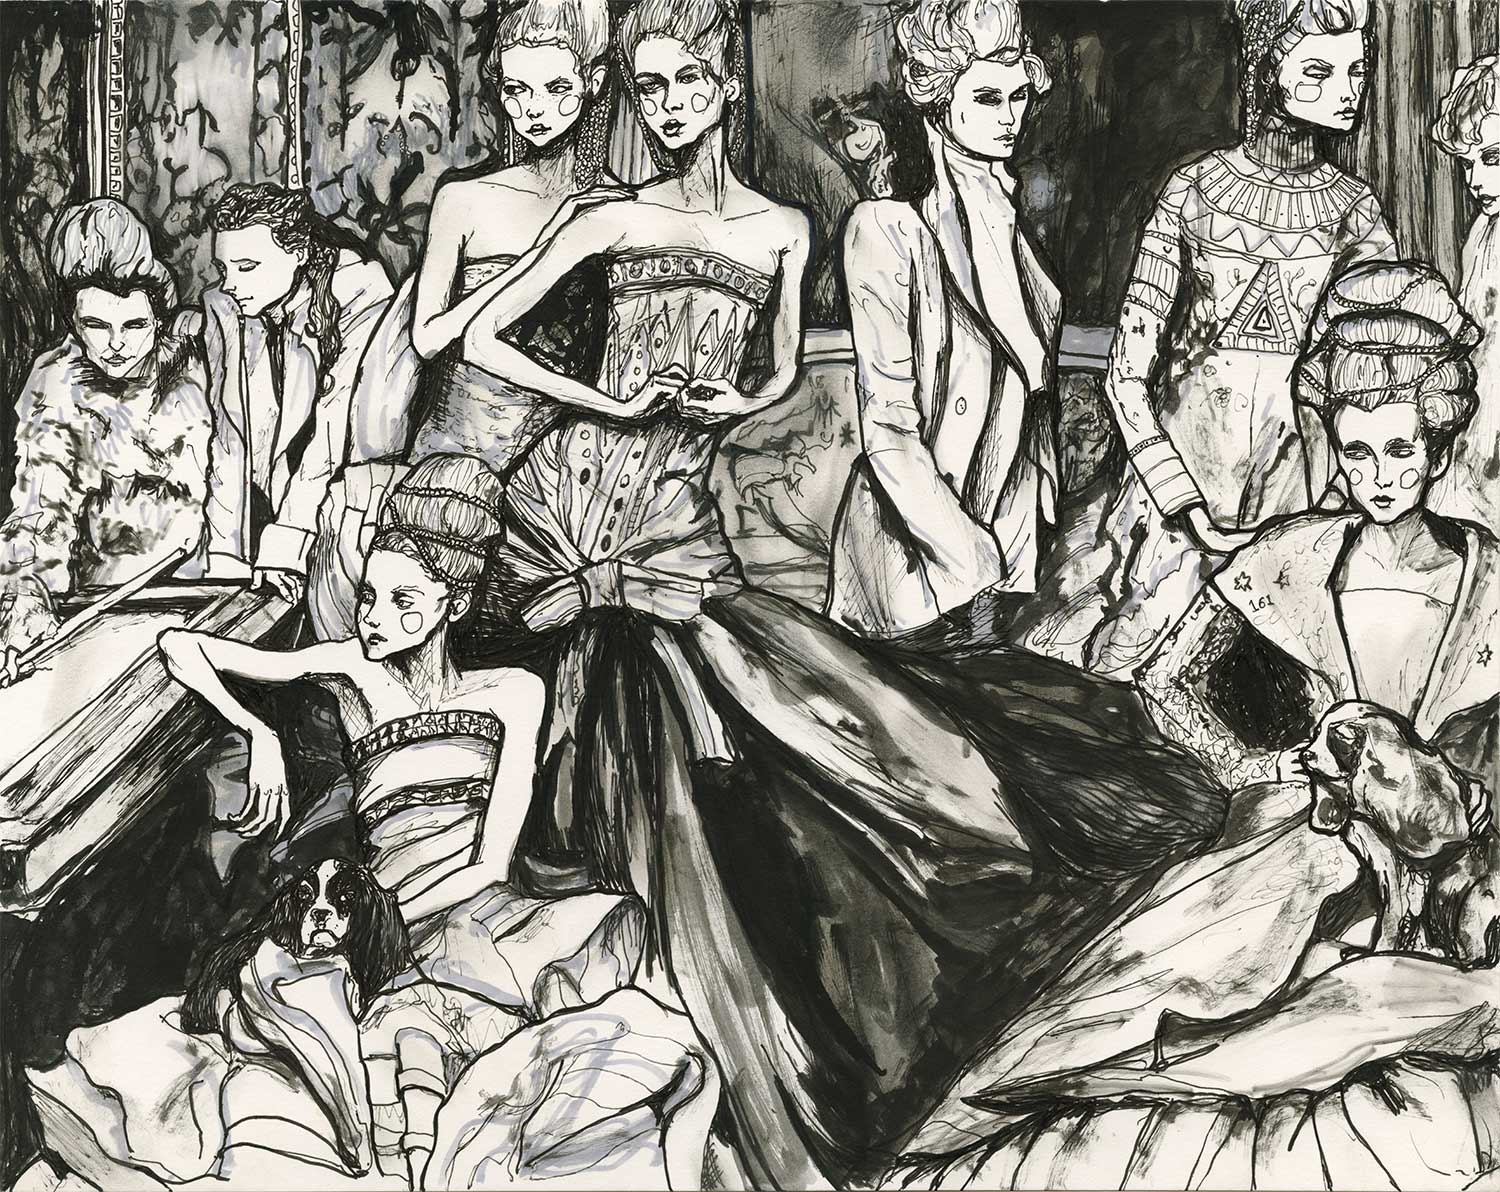 Artist Danny Roberts Ink and pen illustration inspired by Christian Dior Spring 2004 Haute Couture French by Photographer Annie Leibovitz, Vogue, 2004 photo